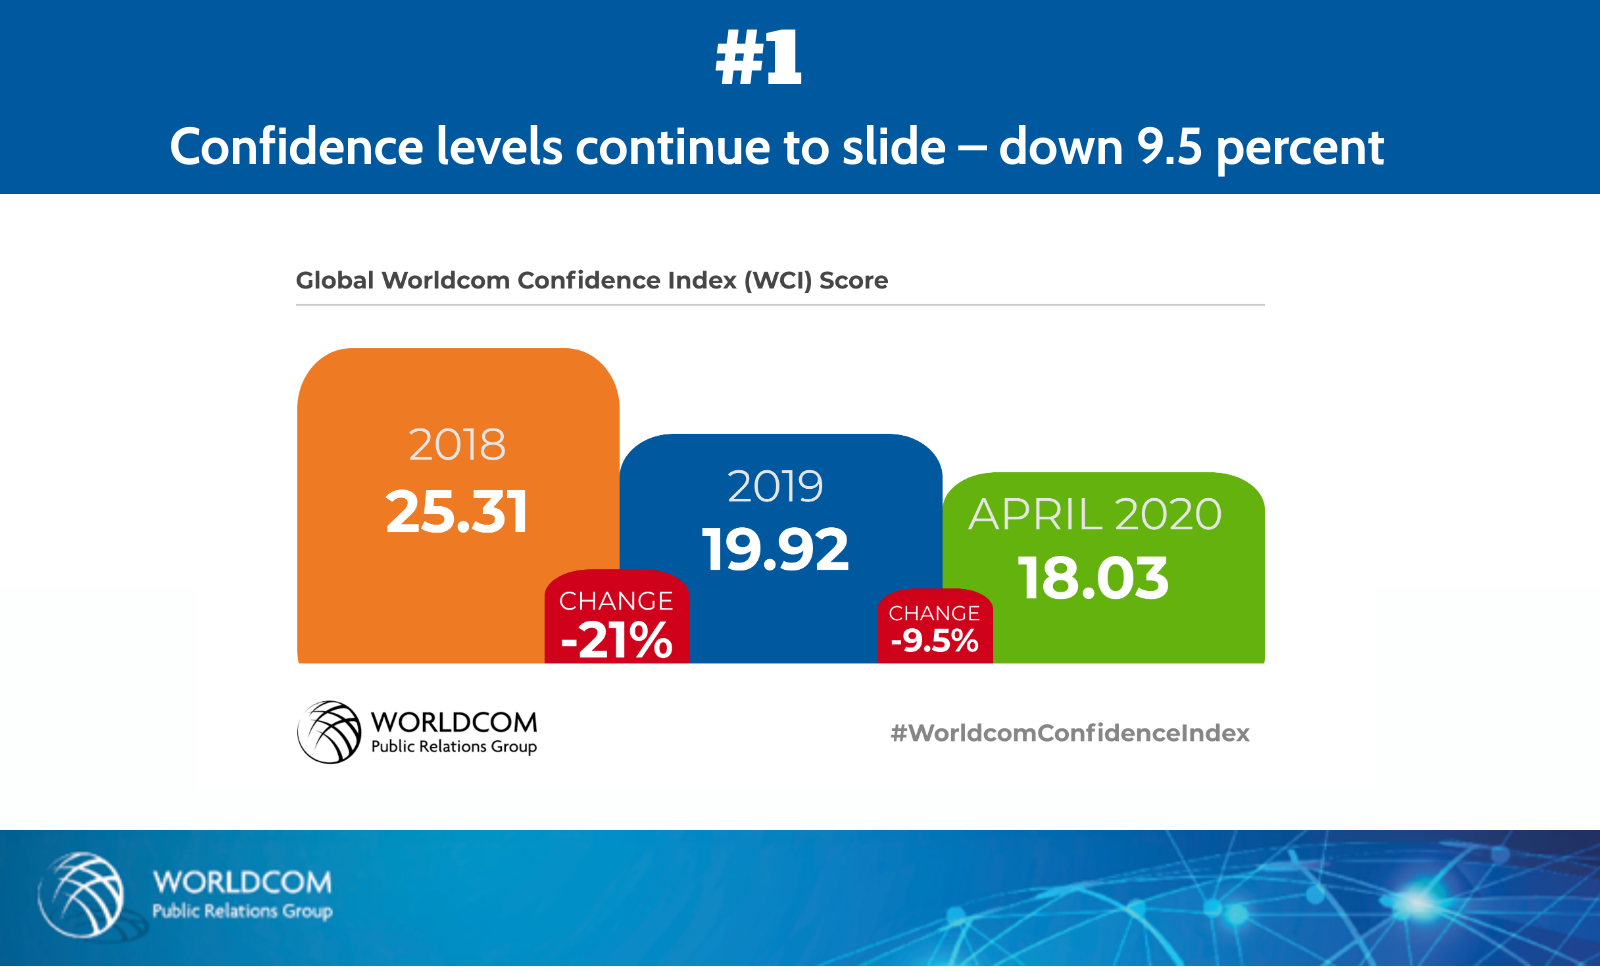 Worldcom-Confidence-Index-2020-April1